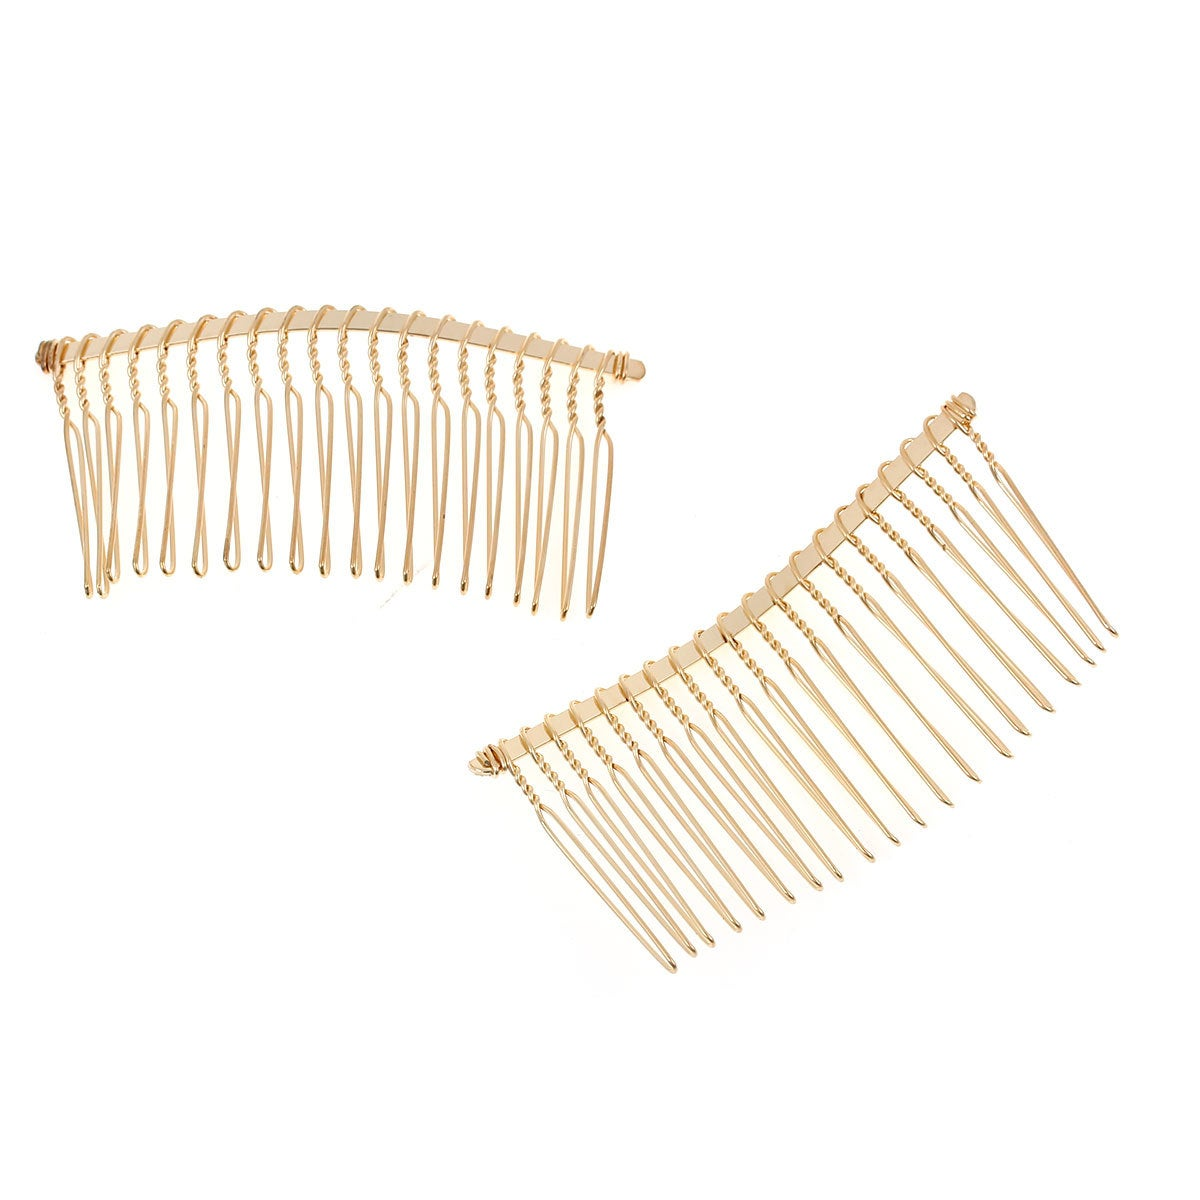 5 Gold Plated Hair Combs - Nickel Free - Lead Free